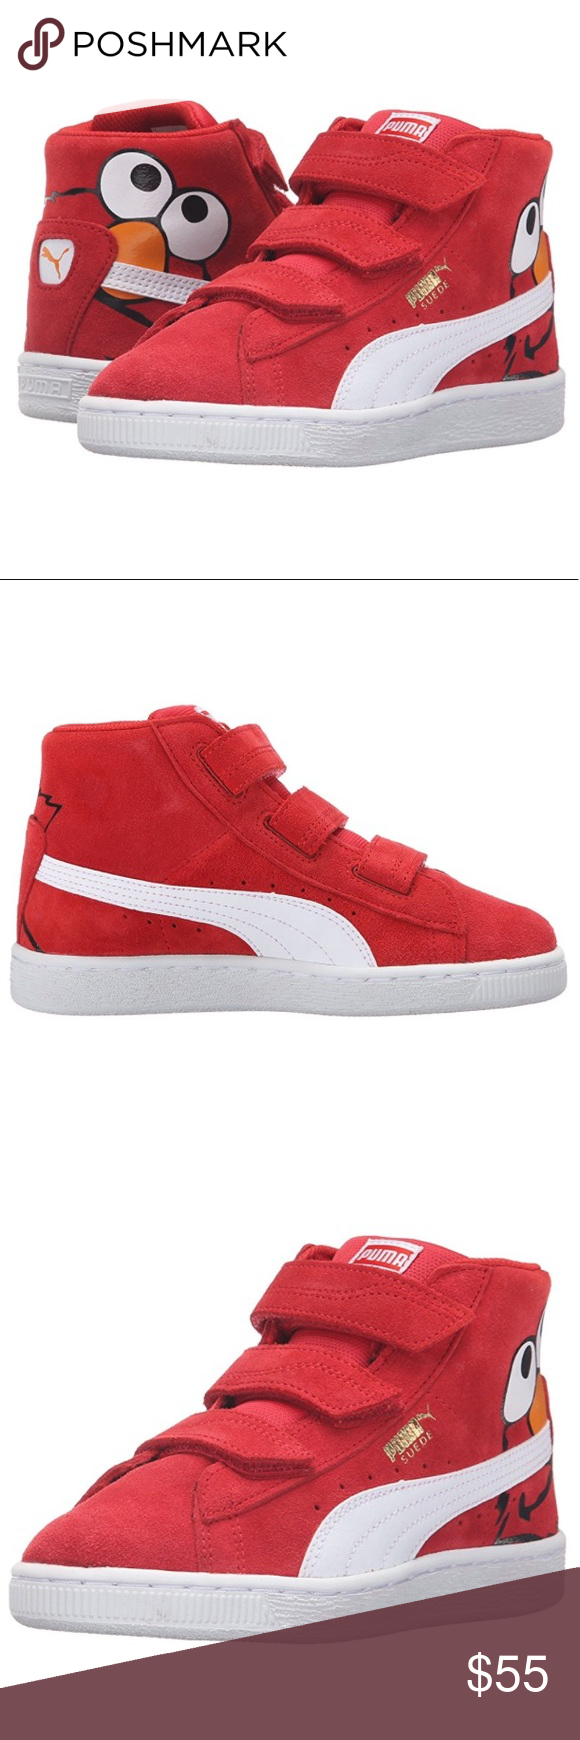 2f64a0a7c1e5 Suede Mid Elmo Puma! Sesame Street Edition! Your favorite sesame street  characters appear this